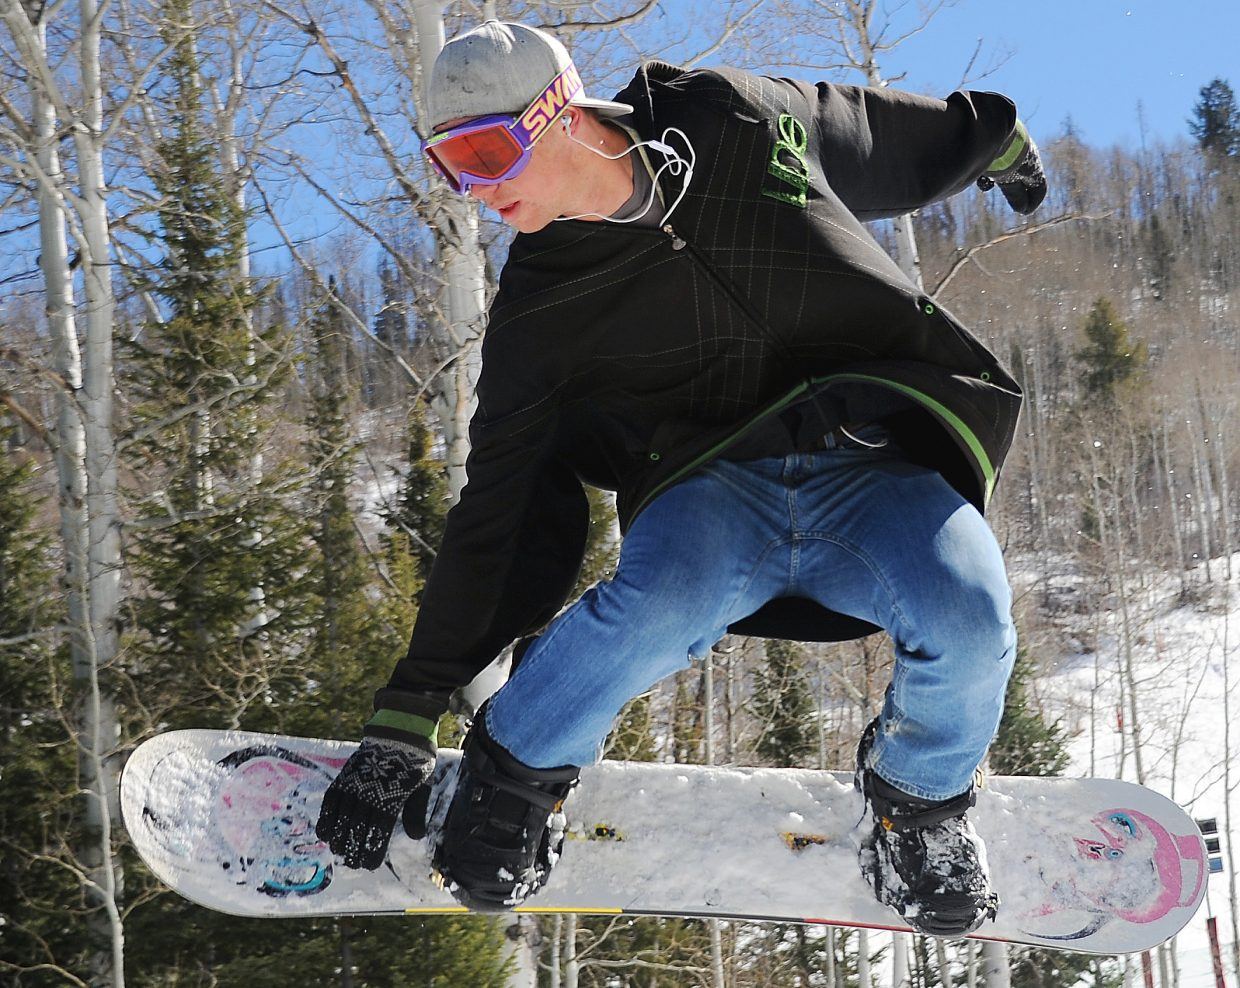 """Warm spring weather can bring about """"hero"""" conditions: the soft, slushy snow that can make regular look like pros and inspire others to try new things in the terrain park or on moguls runs."""